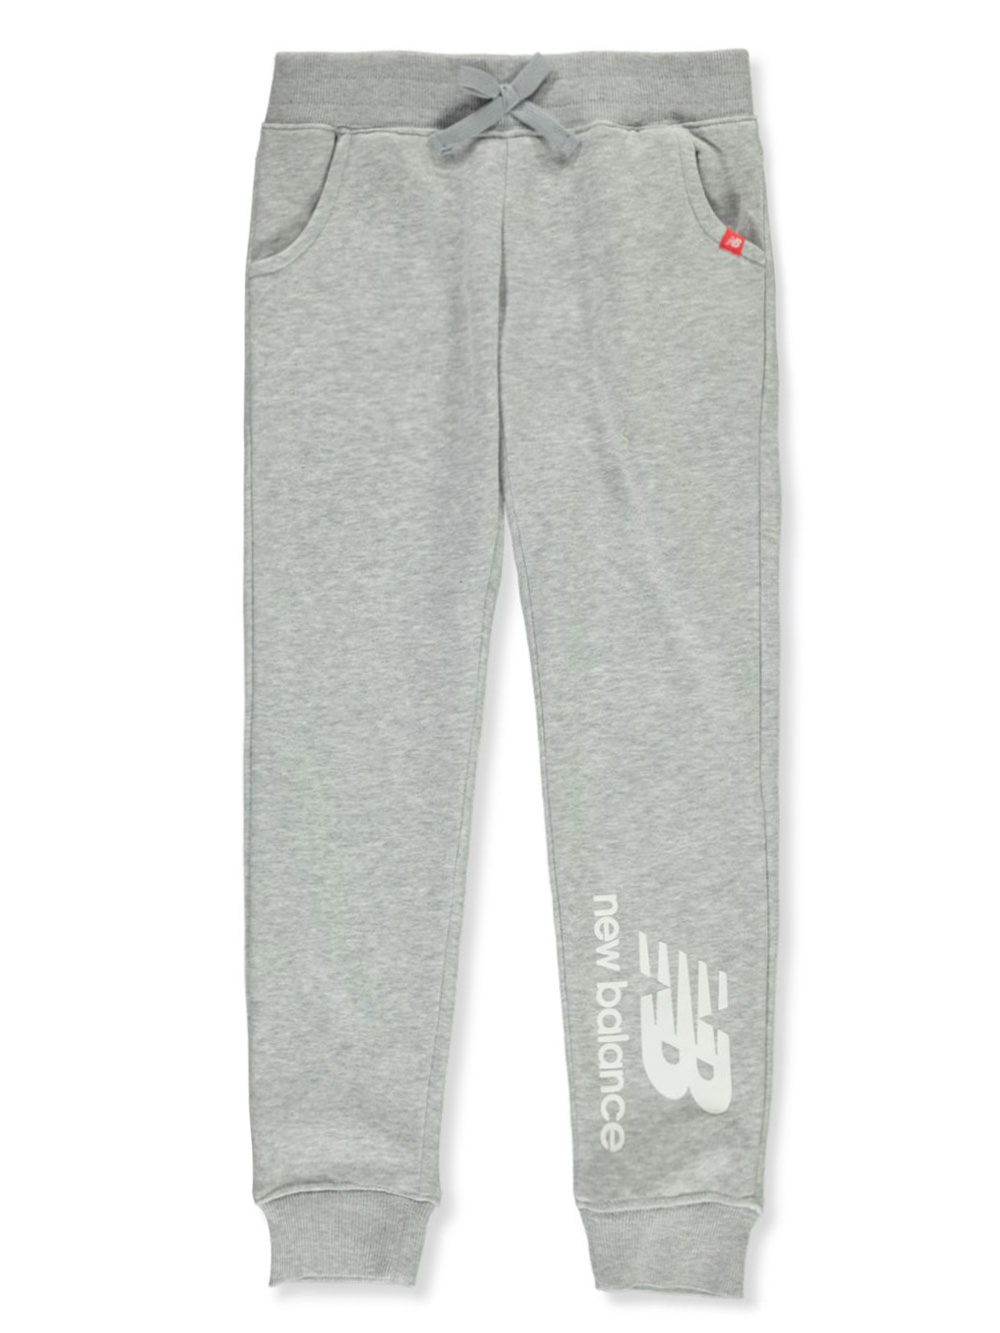 New Balance Sweatpants and Joggers